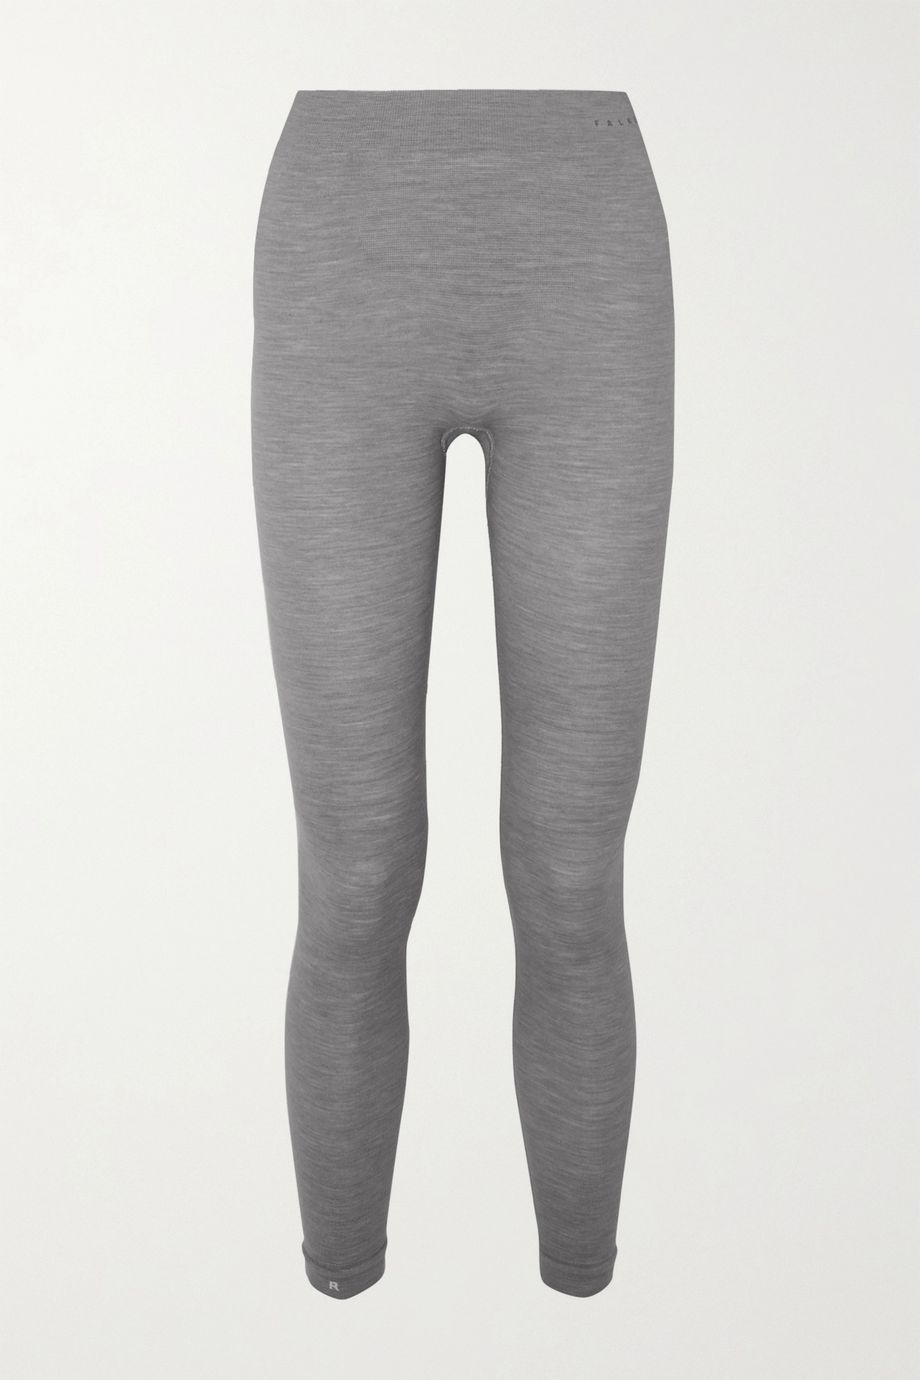 FALKE ERGONOMIC SPORT SYSTEM Paneled technical stretch wool-blend leggings